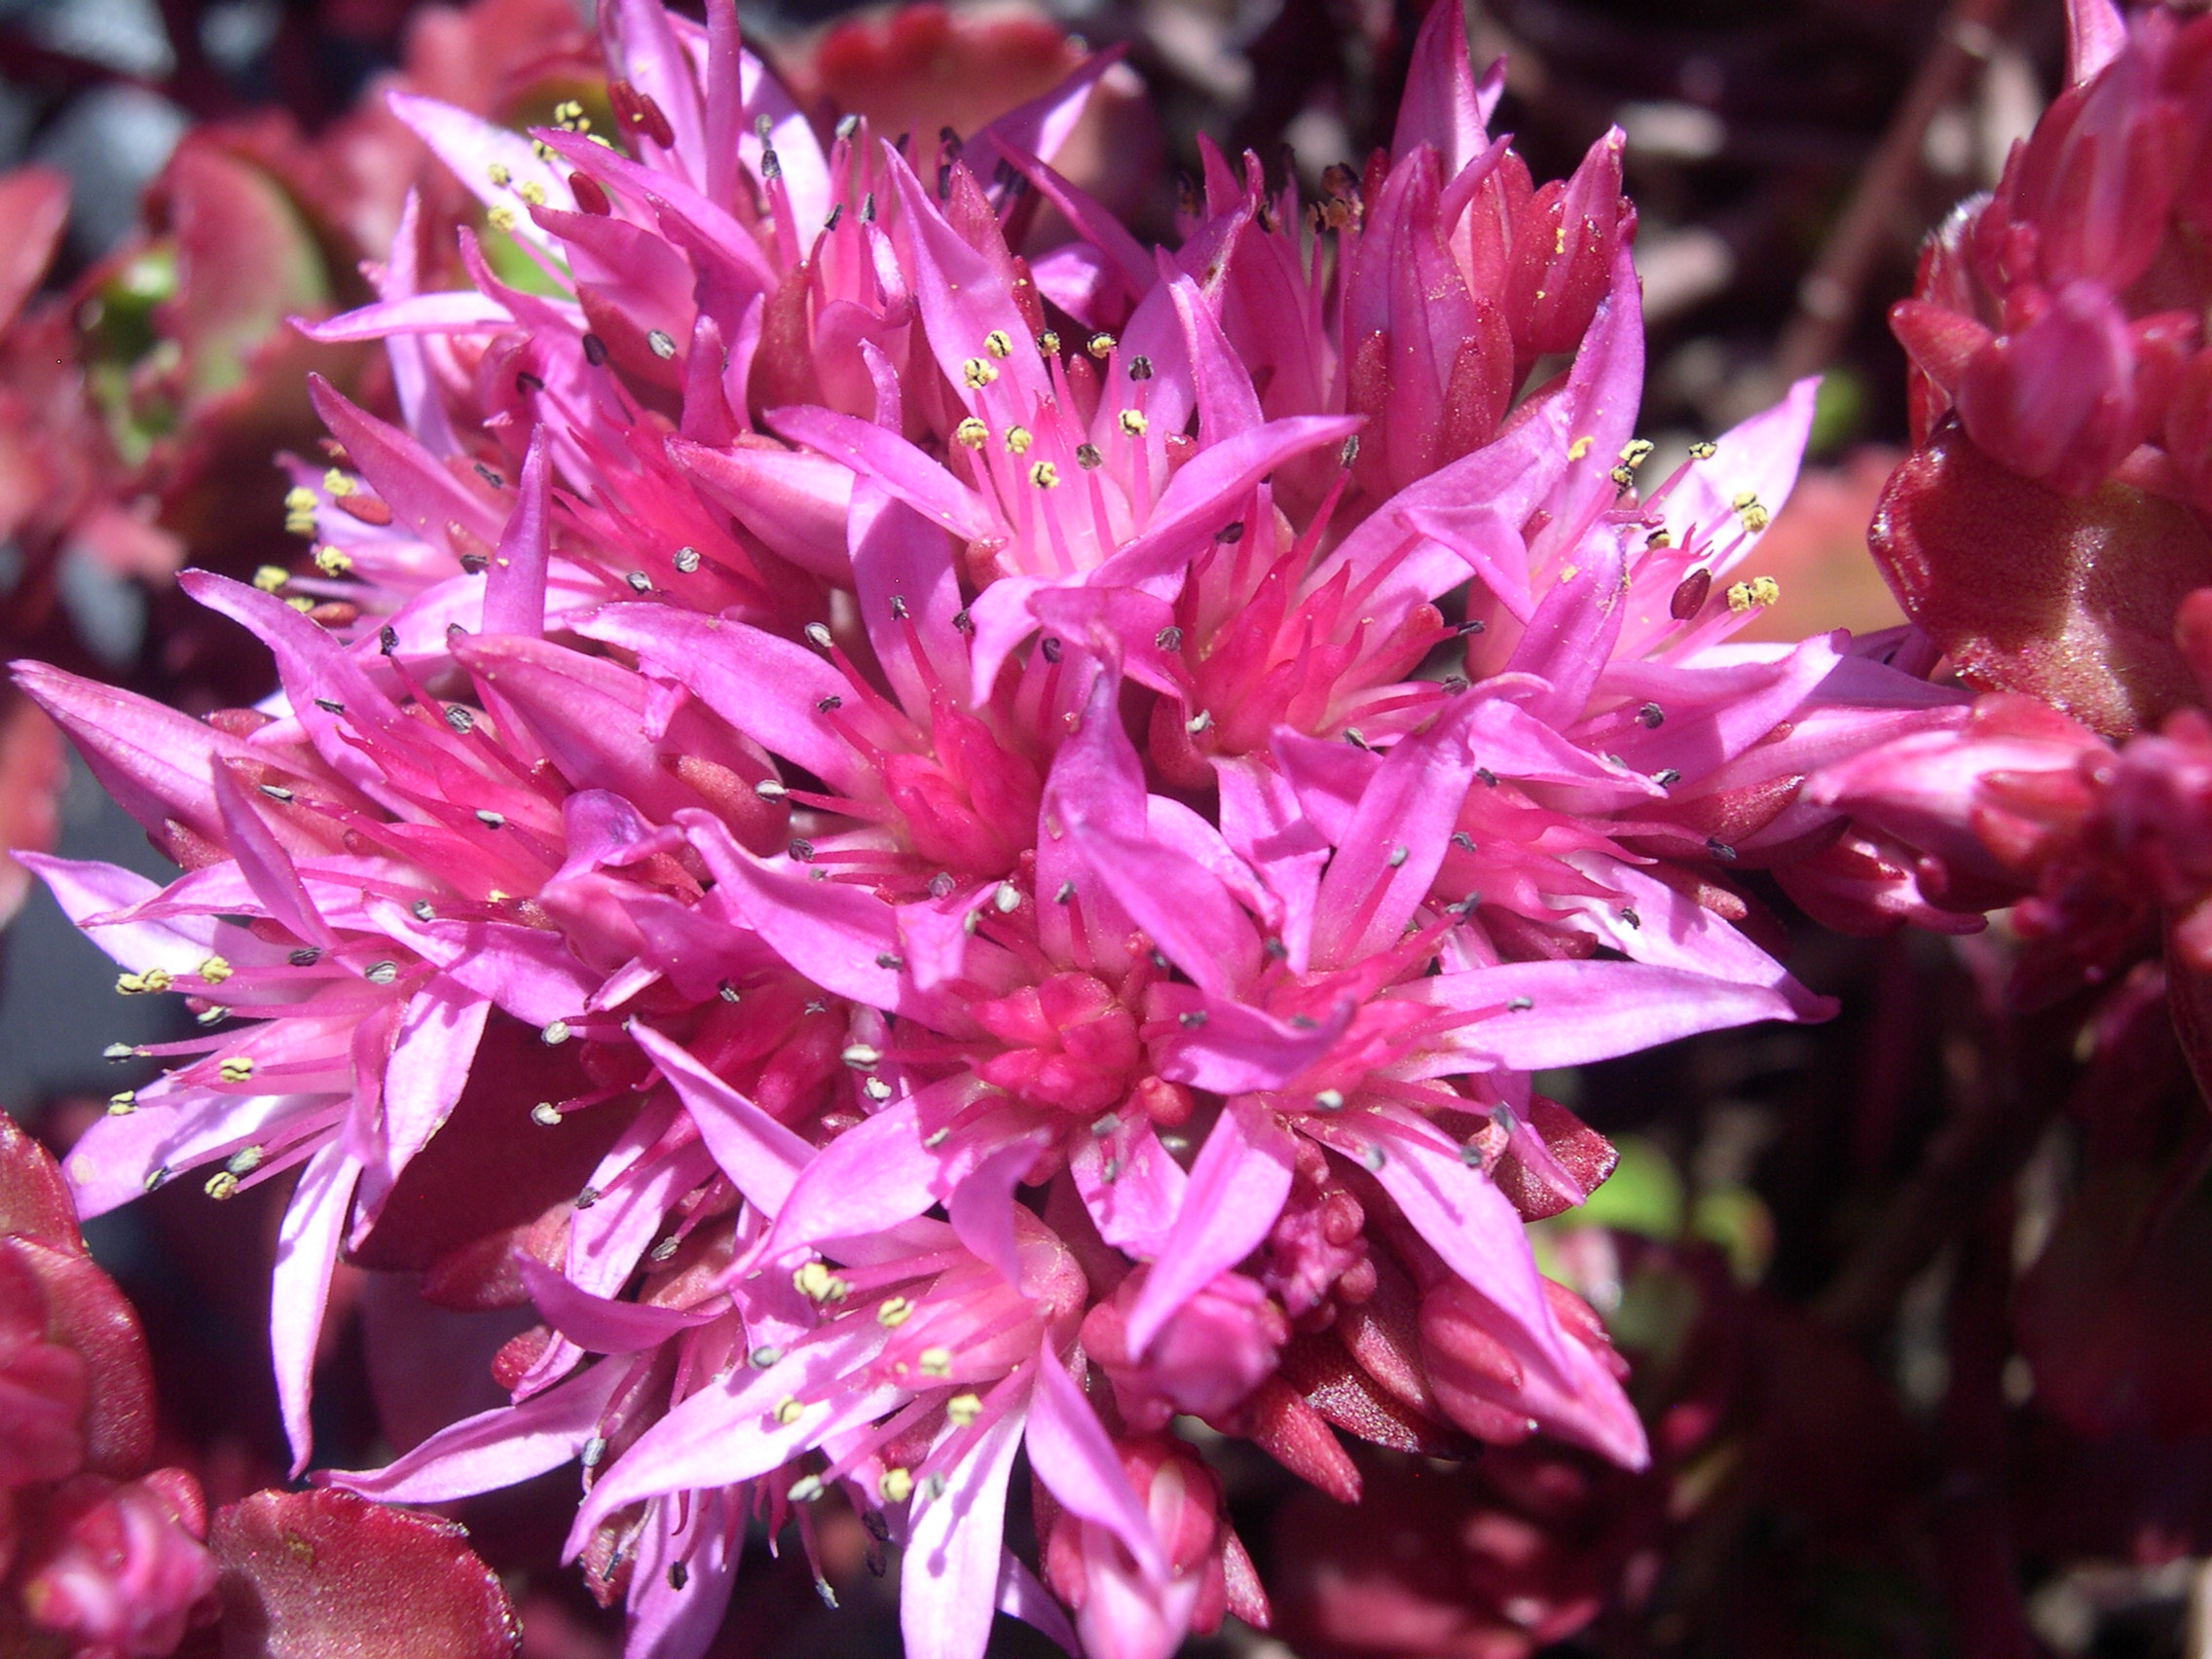 Sedum spurium 'Ruby Mantle' 7-20-08 (1)